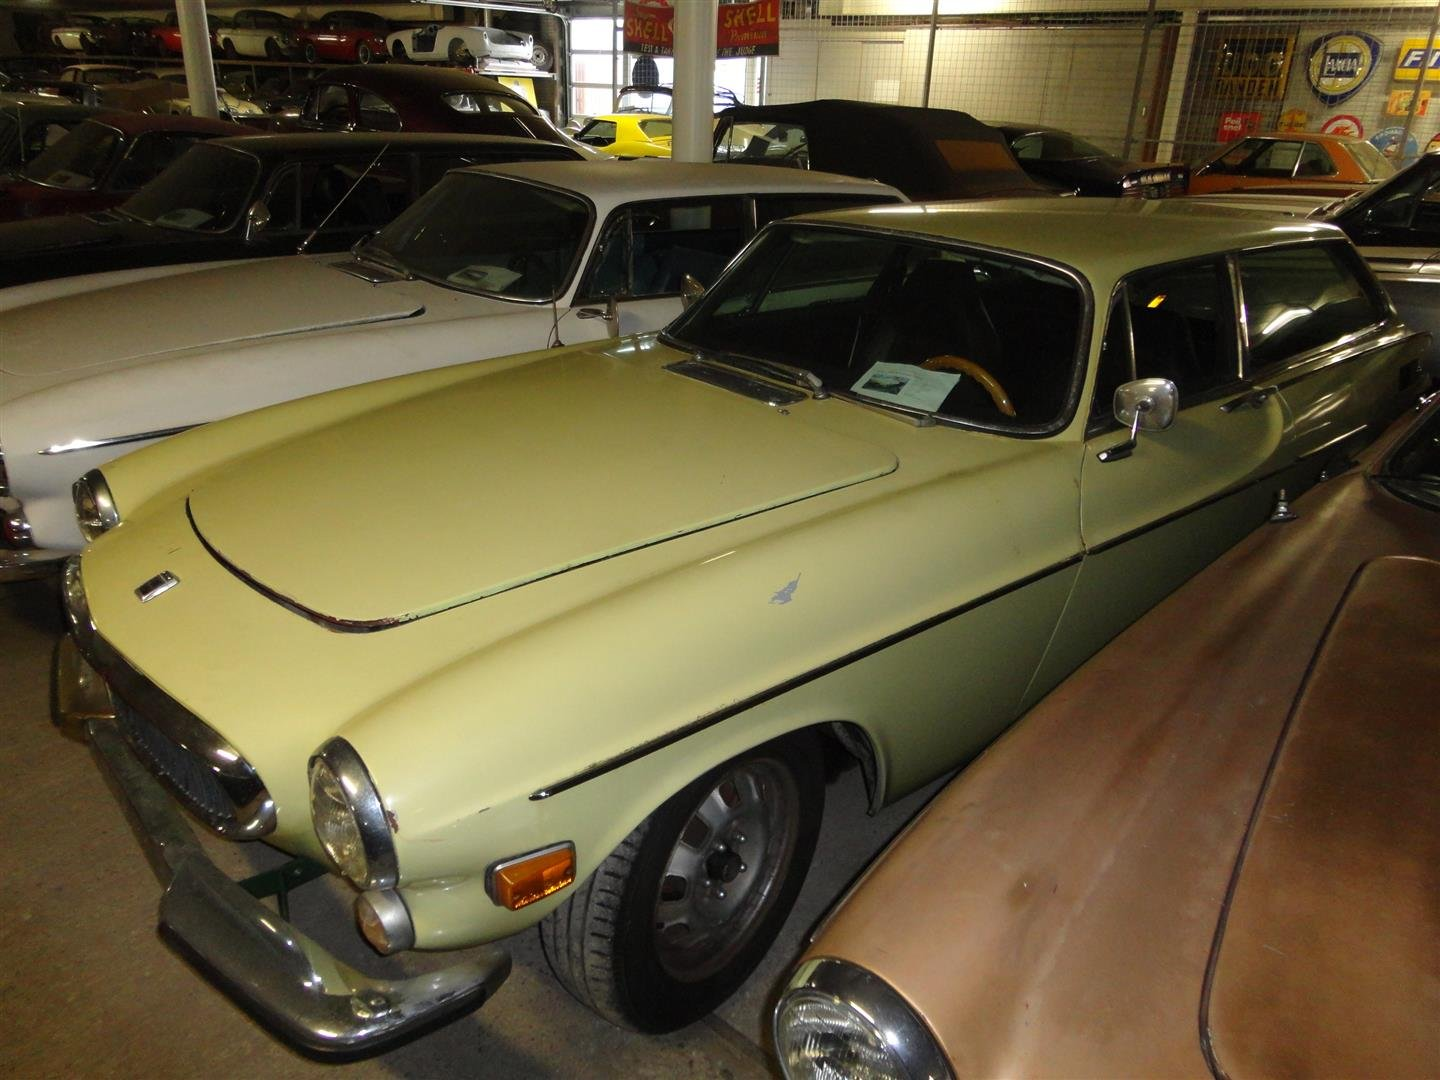 1972 volvo 1800 ES to restore for sale For Sale (picture 2 of 6)